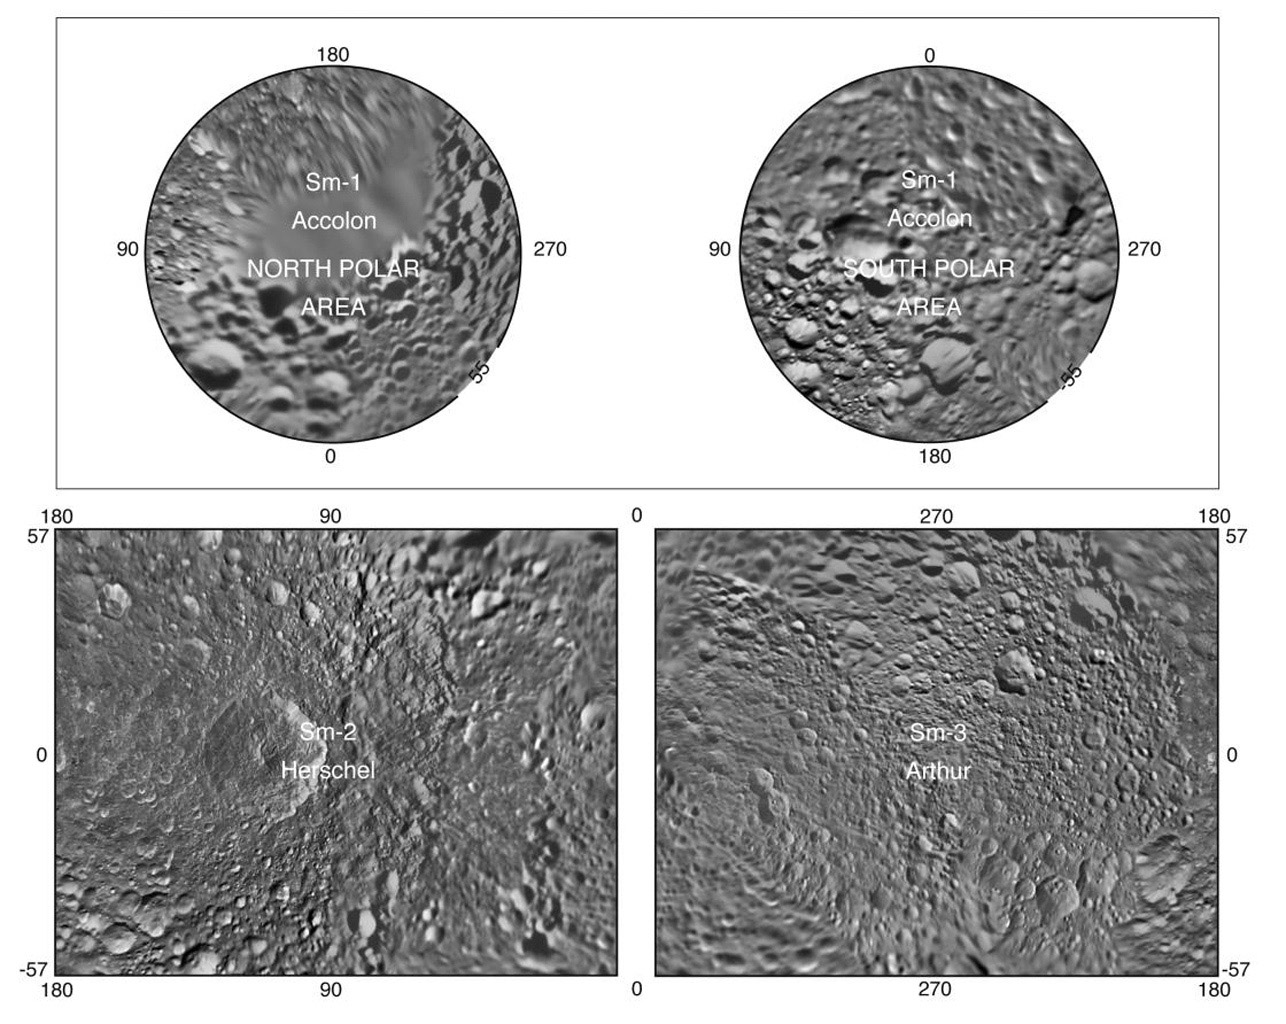 Presented here is a complete set of cartographic map sheets from a high-resolution atlas of Saturn's moon Mimas. The atlas is a product of the imaging team working with NASA's Cassini spacecraft.